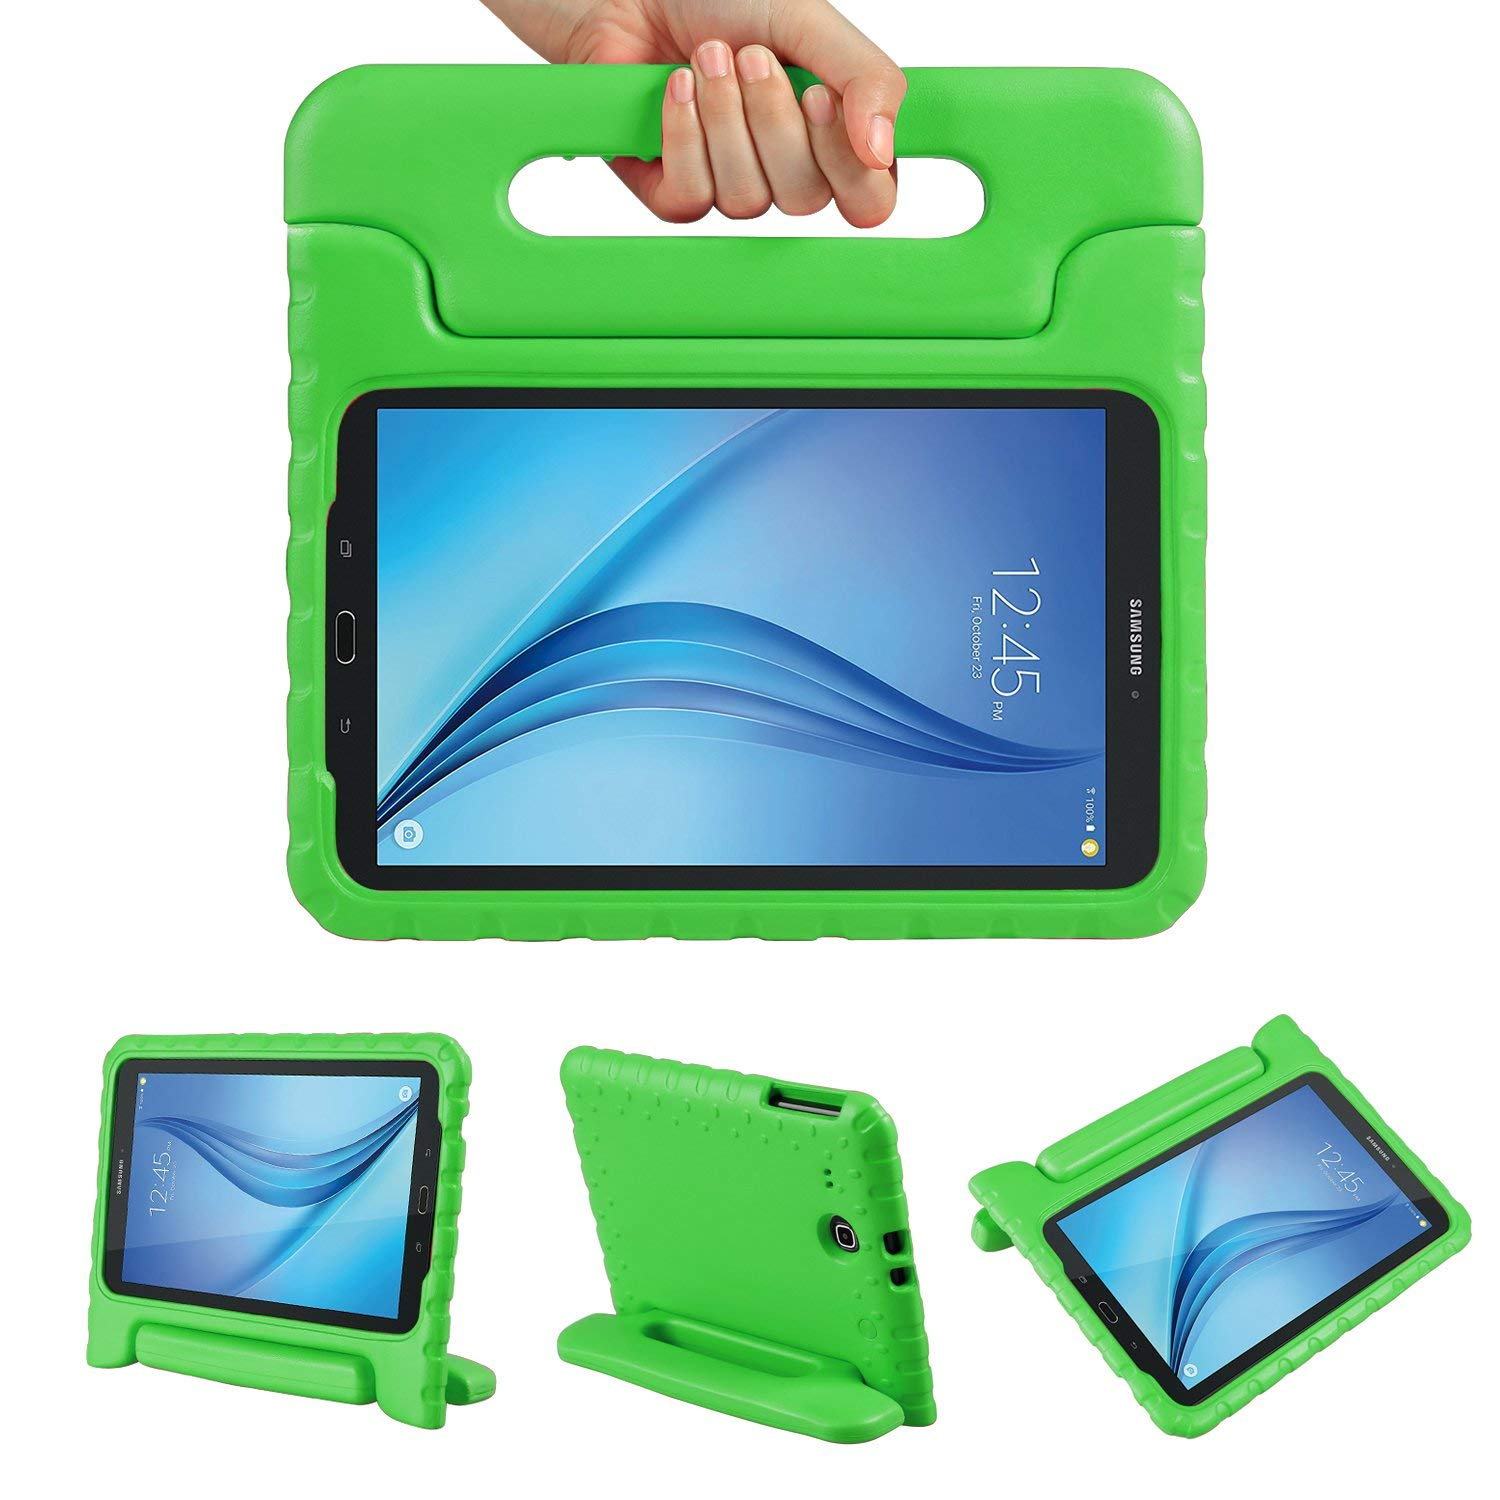 Galaxy Tab E 9.6 Case, Allytech Dynamo Case for Samsung Galaxy Tab E 9.6 | Shock Proof Heavy Duty Kidproof Cover for Kids | Girls, Boys | Kid Friendly Handle & Stand | Samsung SM-T560 T561, Green